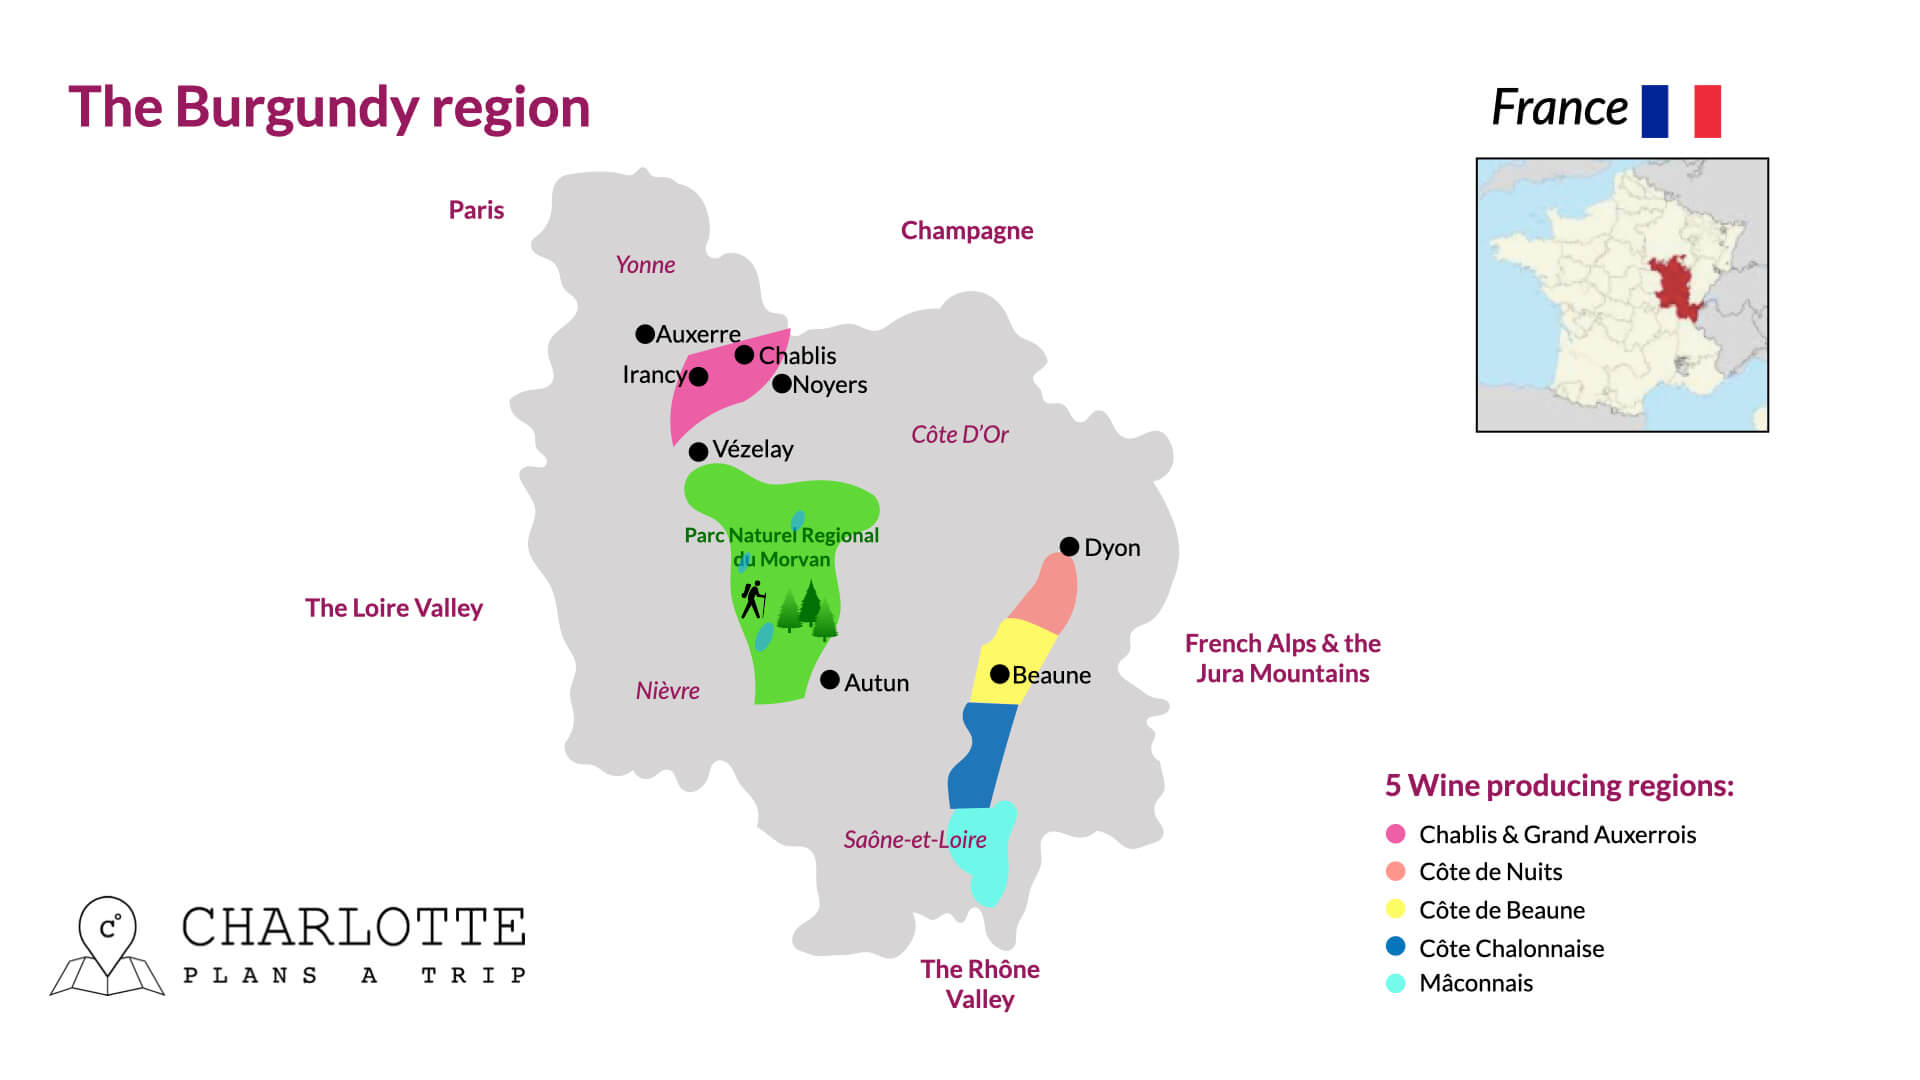 Map of Burgundy Bourgogne including wine regions France